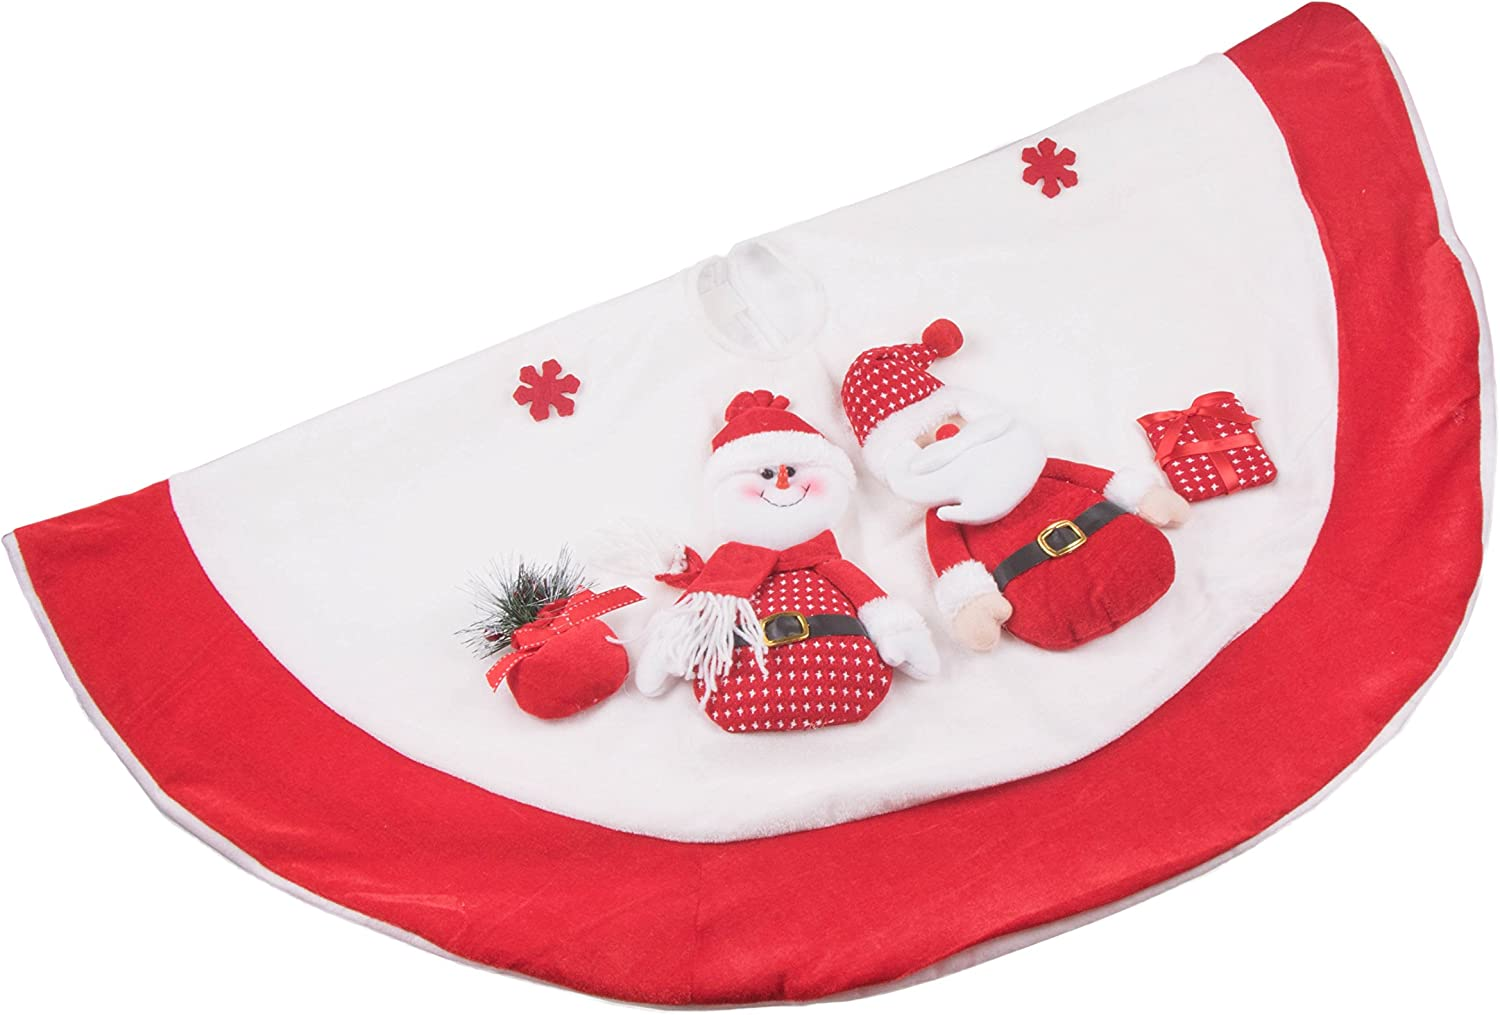 42 Diameter Clever Creations Red and White Christmas Tree Skirt Design with Santa and Snowman Classic Holiday Decor Perfect for Any Size Tree Catches Falling Needles Aids in Cleanup